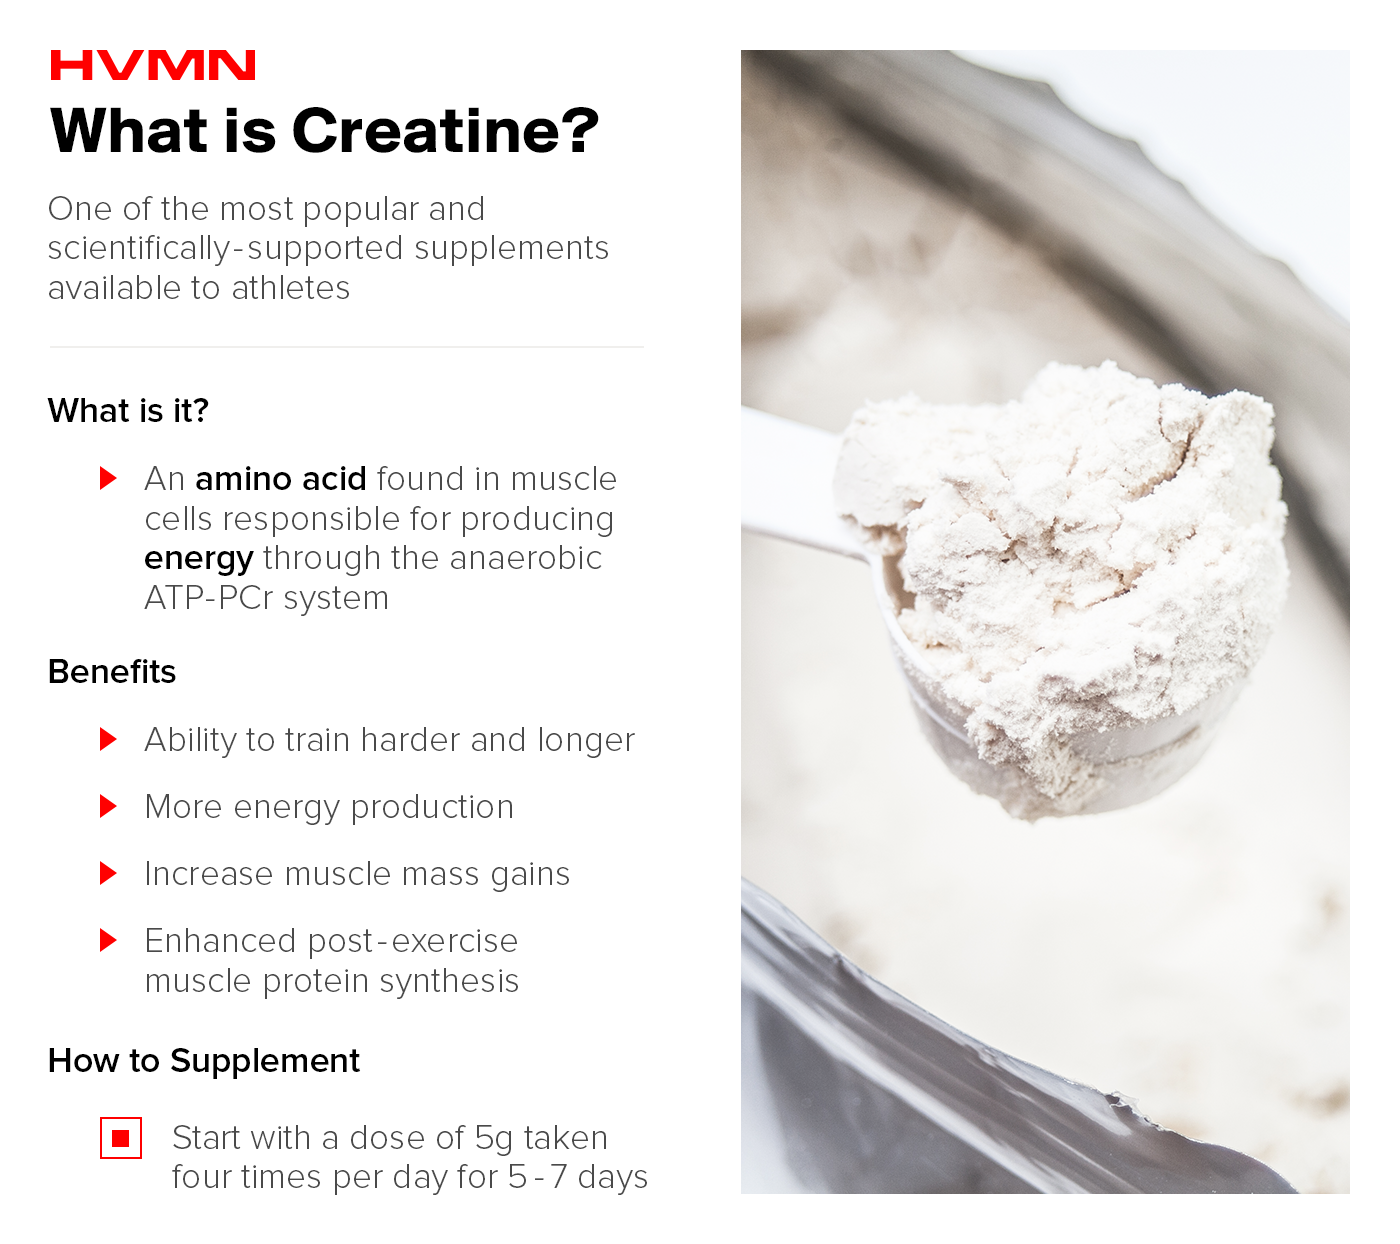 A scoop of creatine powder, illustrating what the supplement is